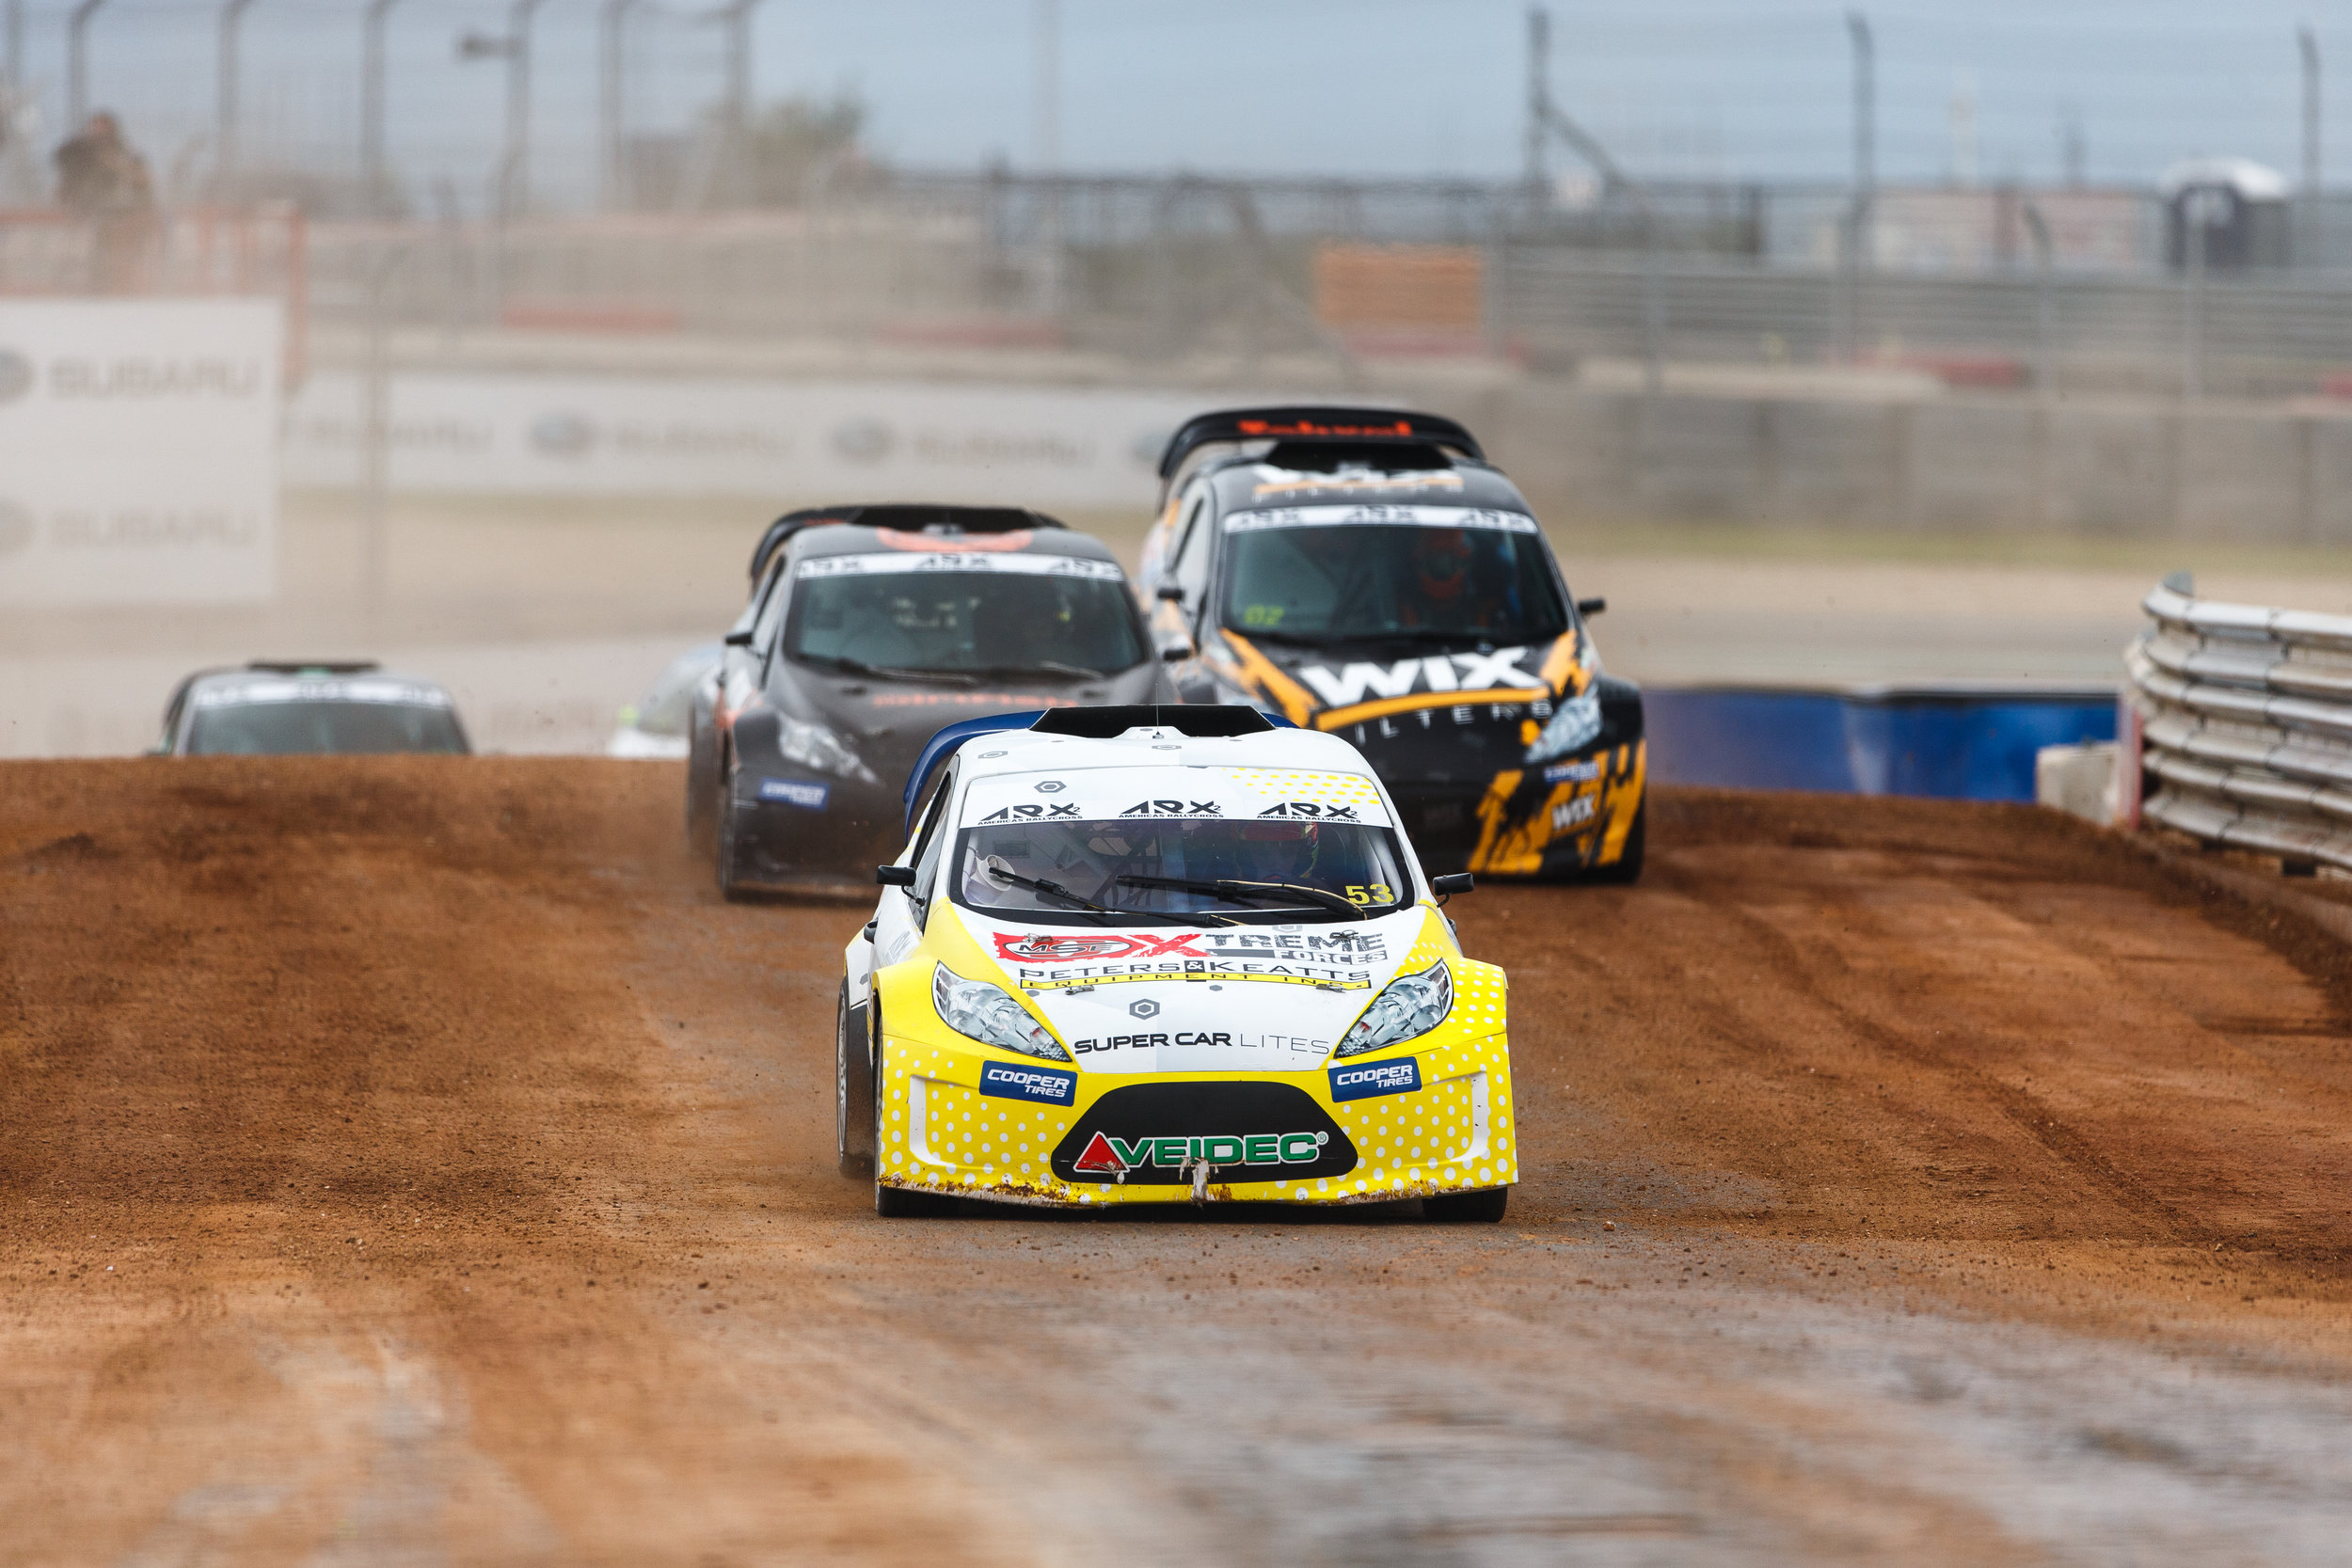 2018_ARX_COTA2_243 copy.jpg